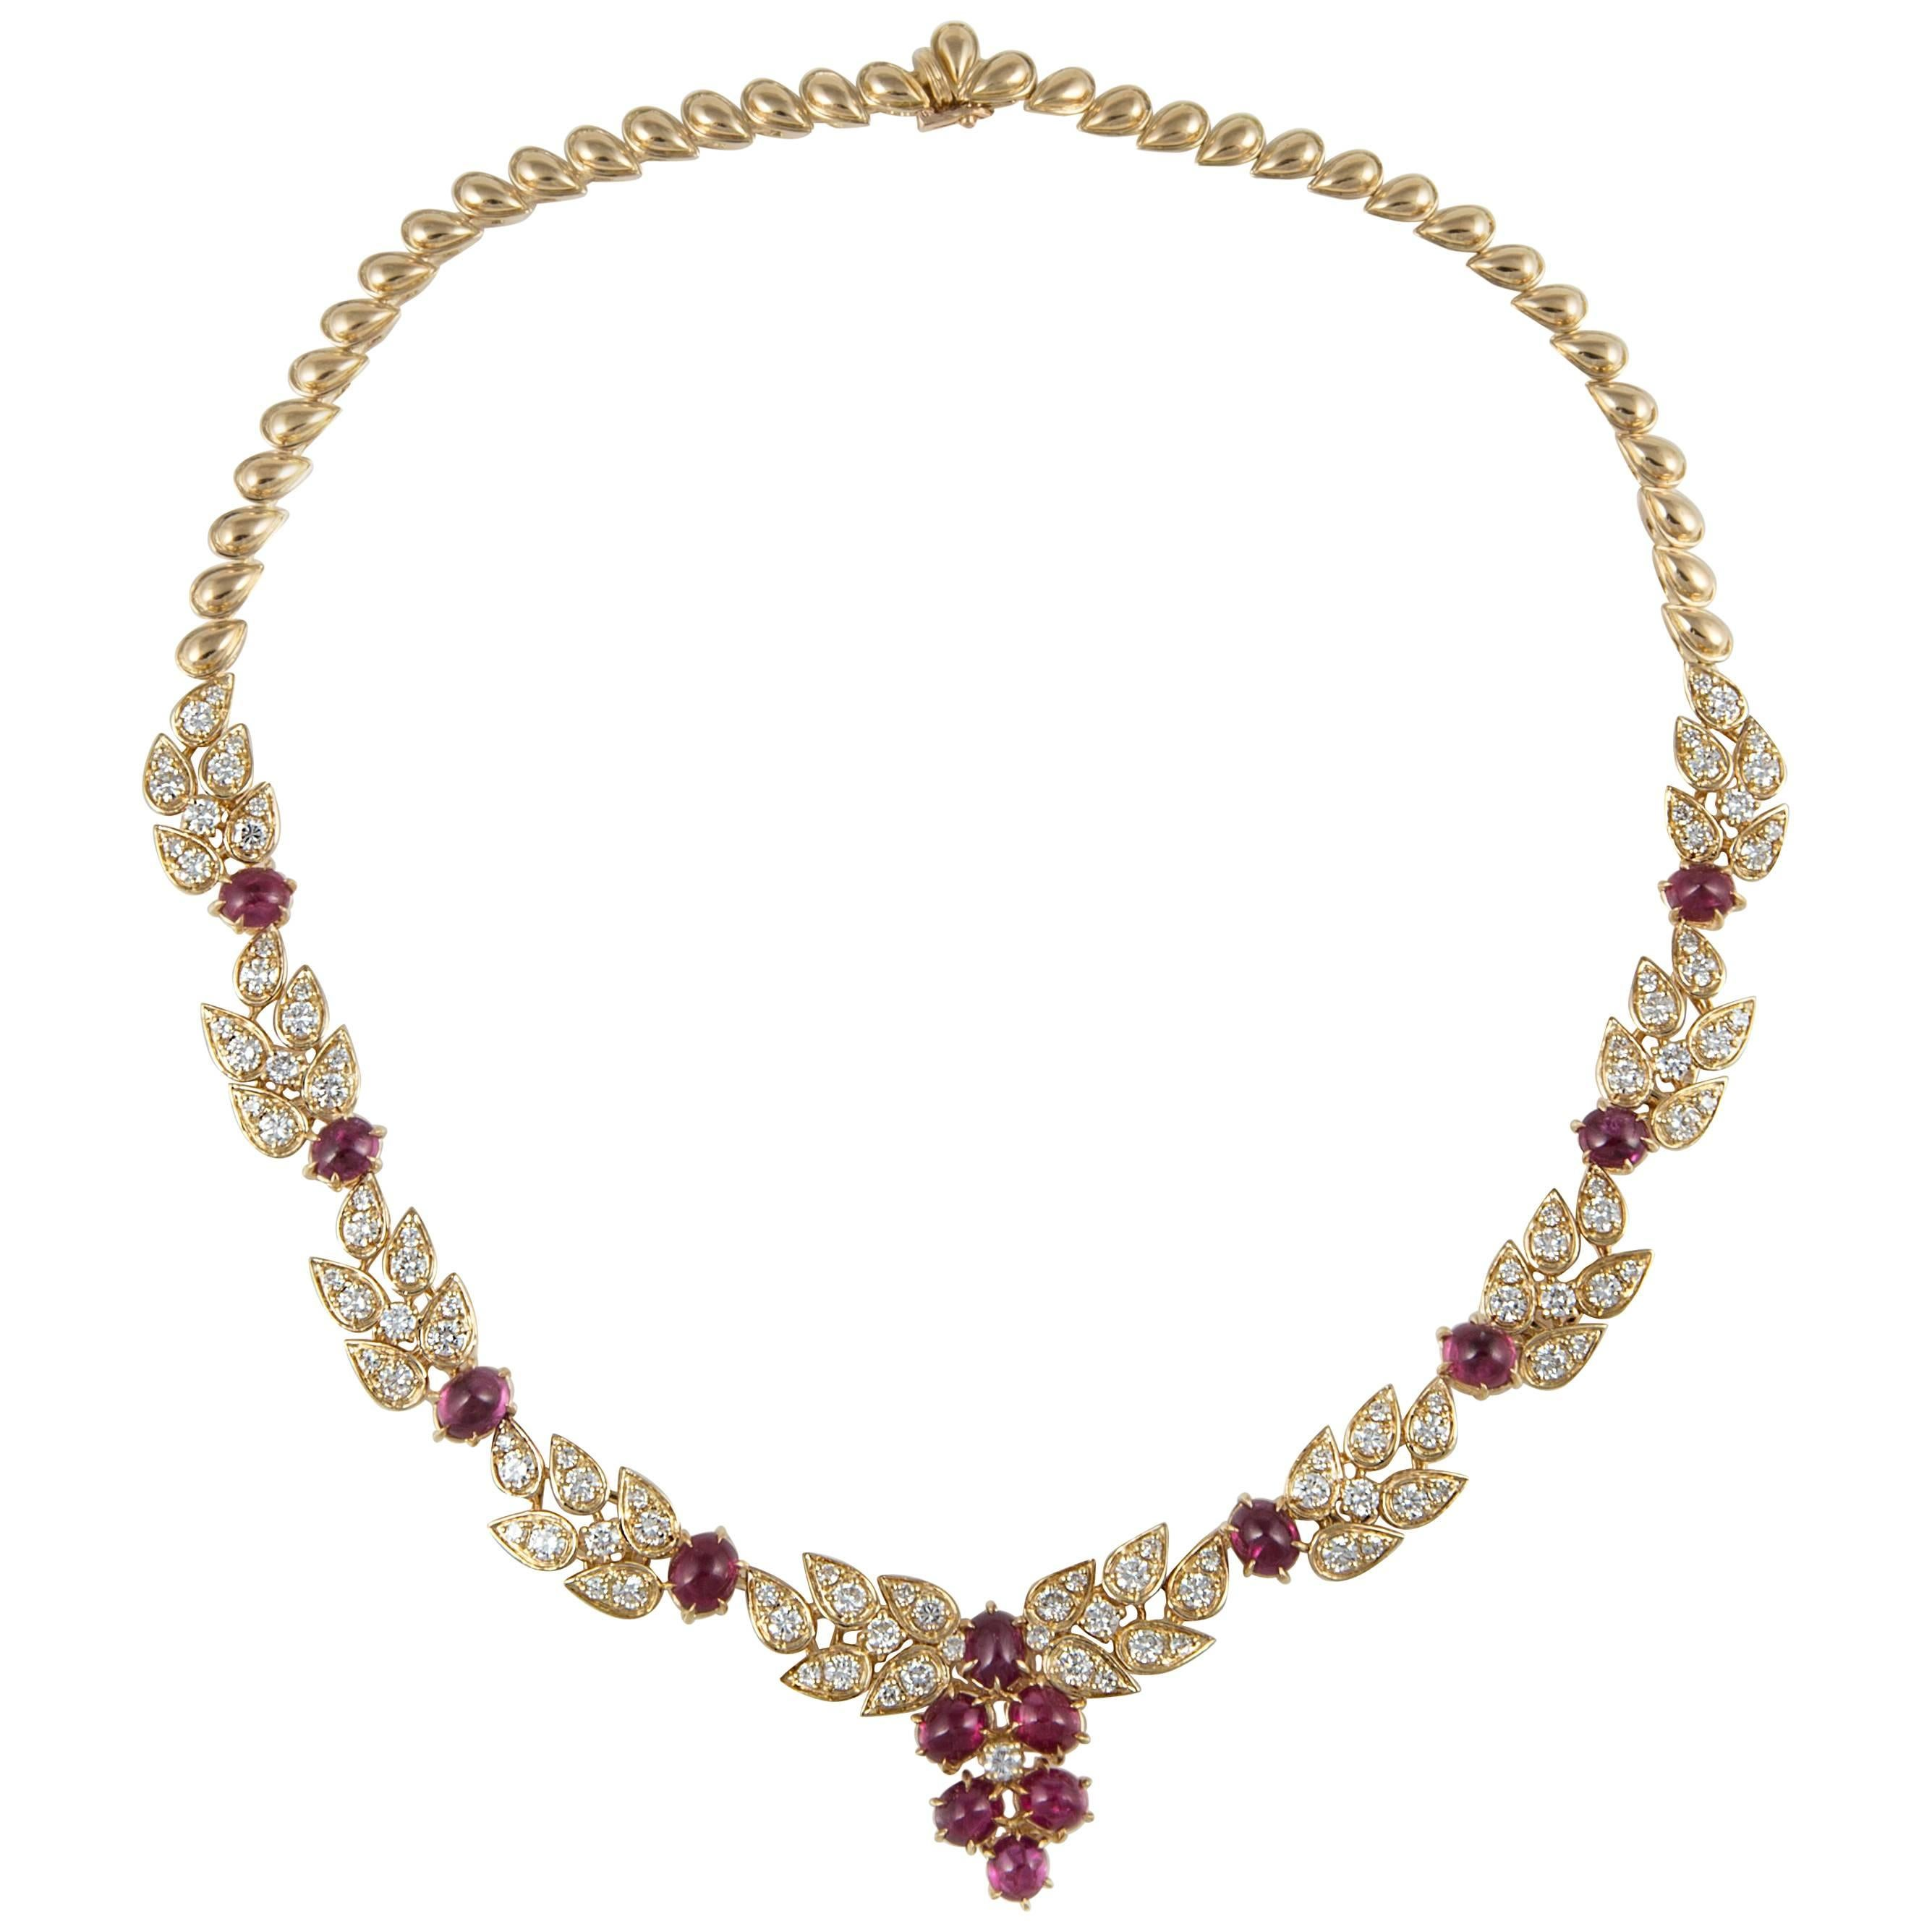 Adler Ruby and Diamond Necklace in 18K Yellow Gold